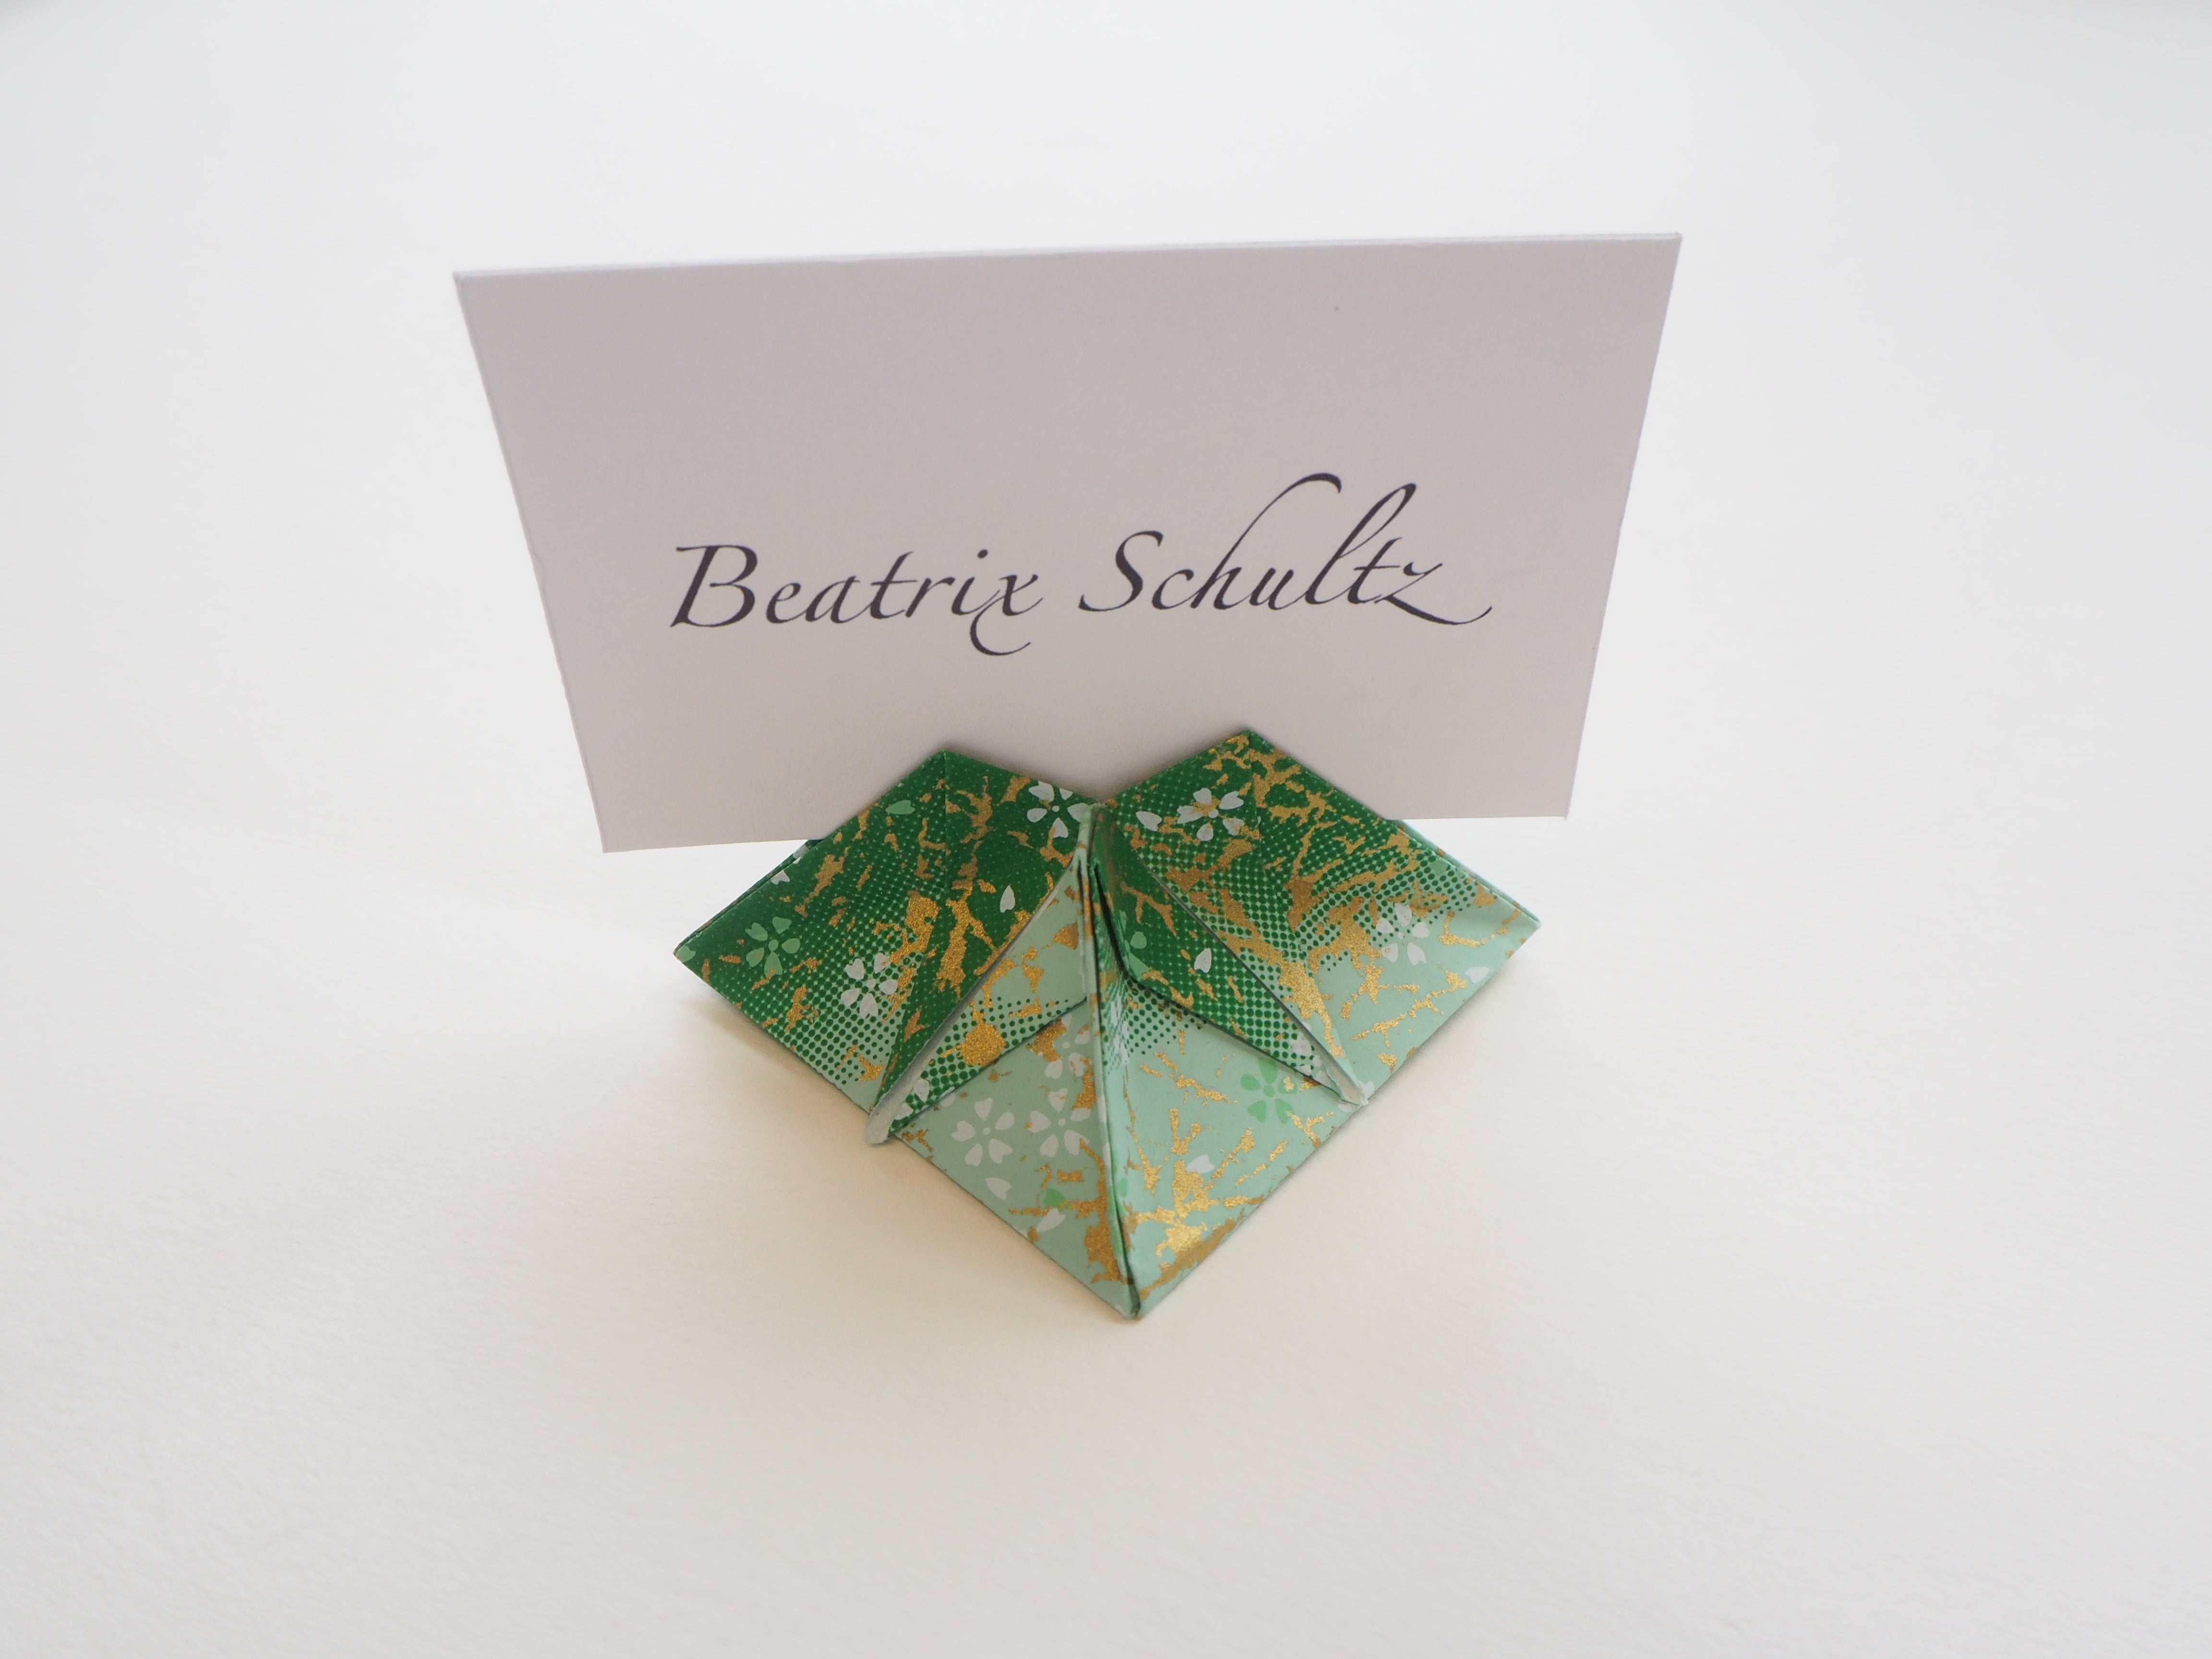 origami place card for wedding and event